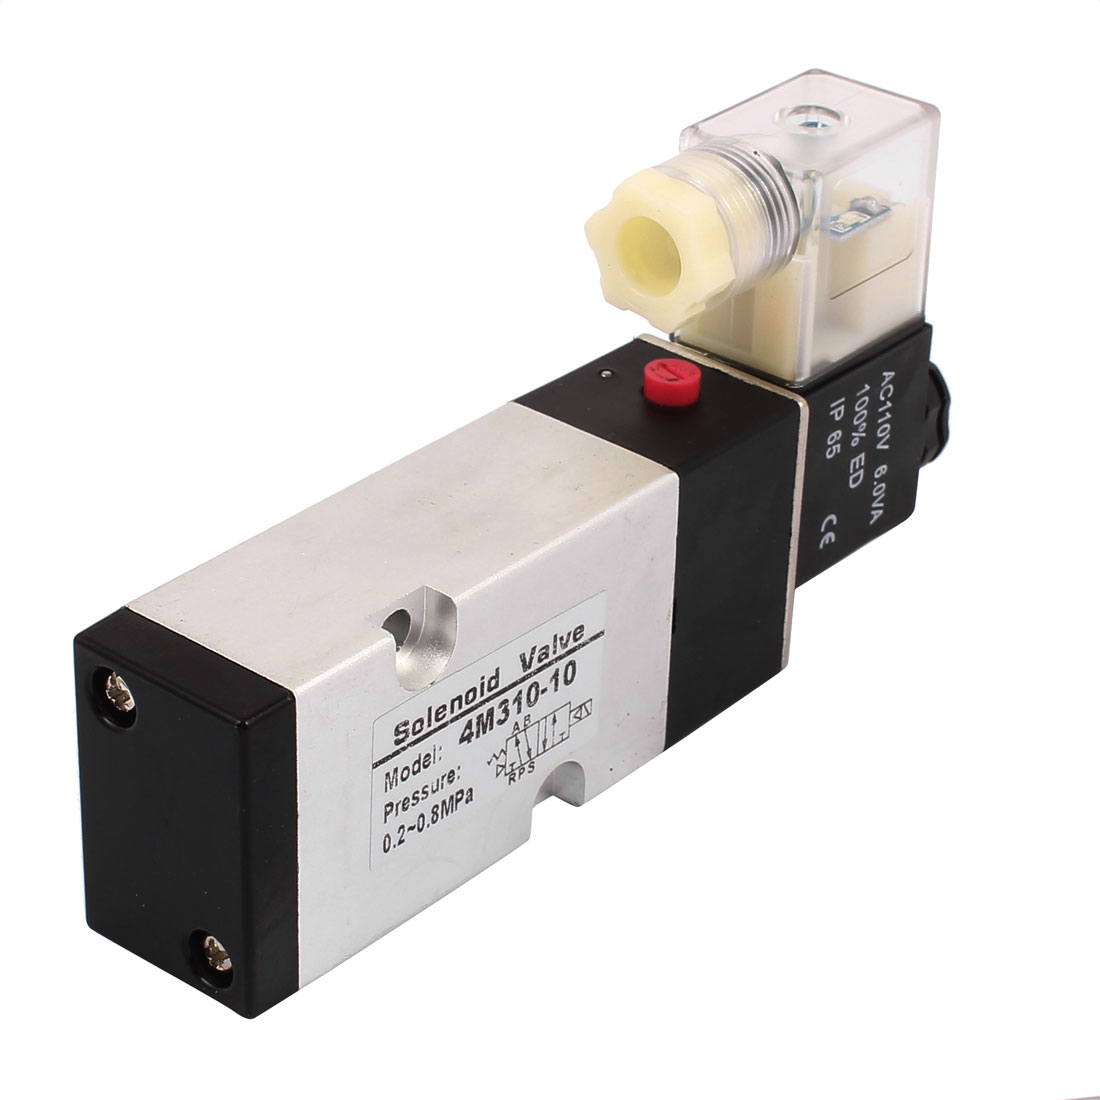 4M310-08 AC 110V 2 Position 5 Way G3/8 Neutral Air Selector Solenoid Valve